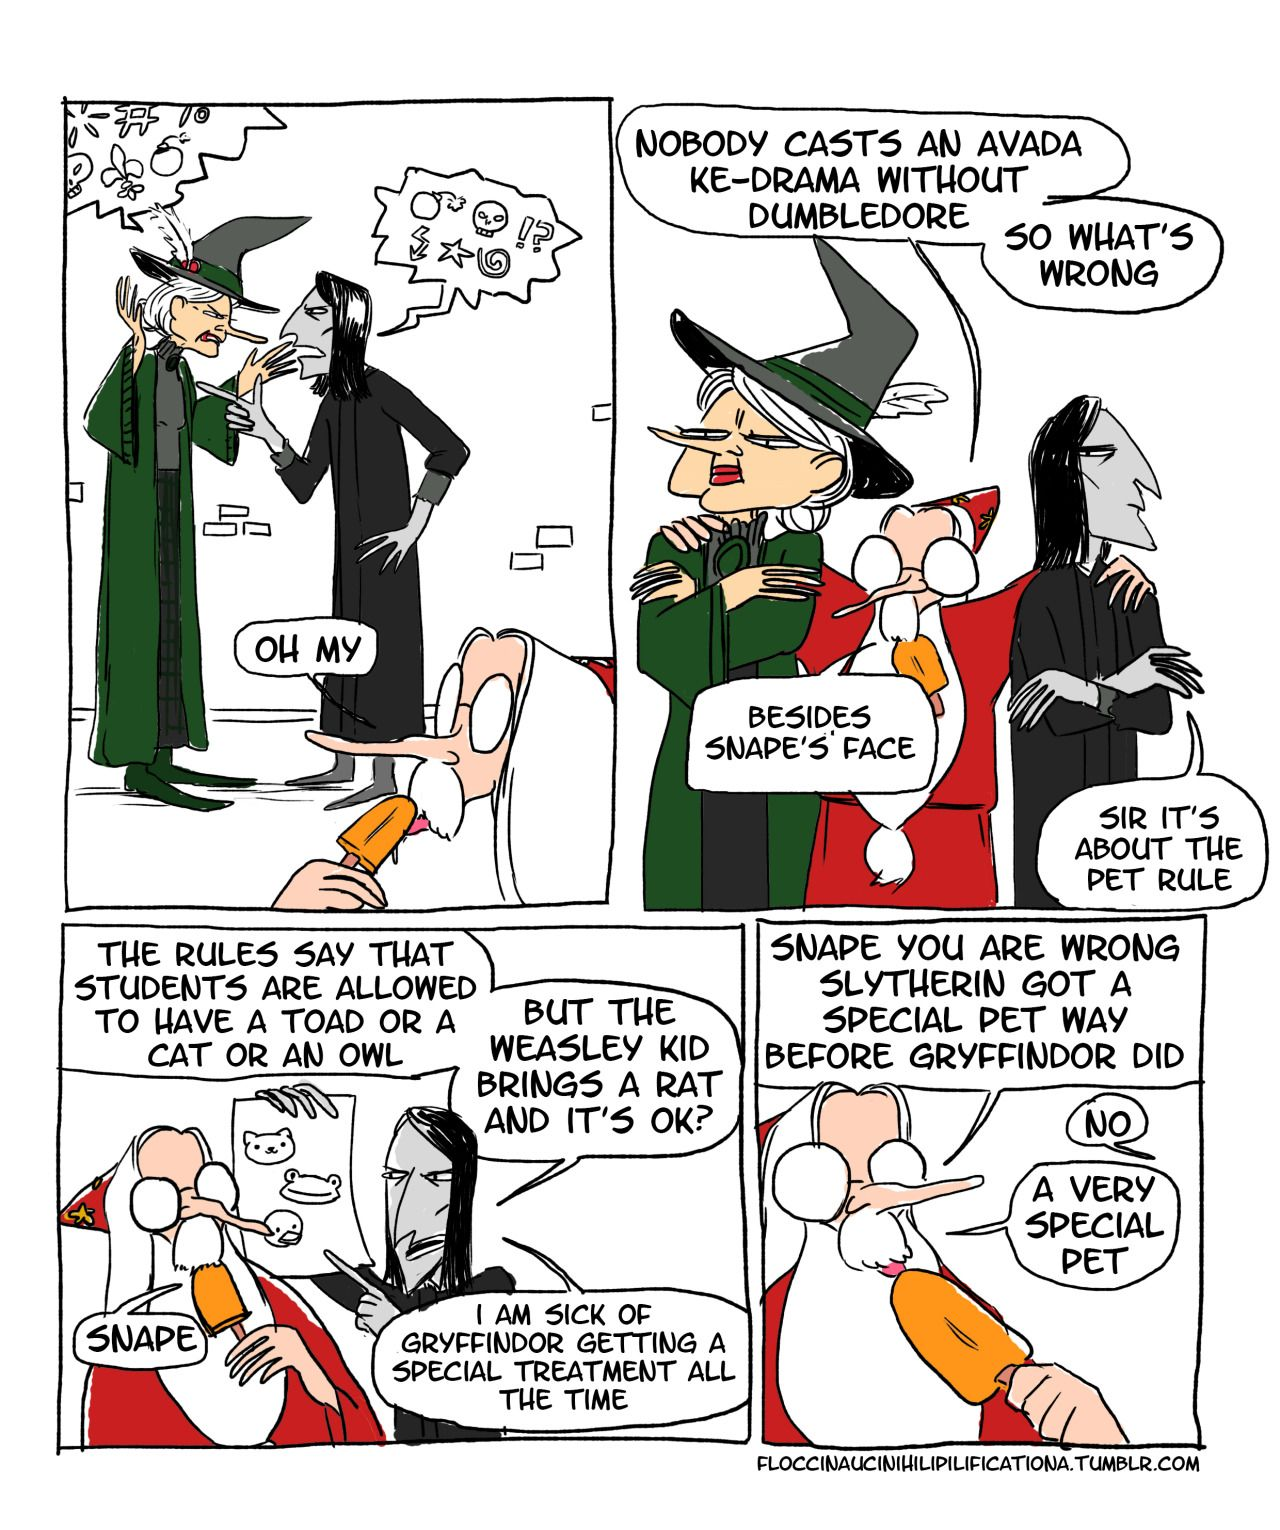 Slytherin's Special Pet by floccinaucinihilipilification. Click through for final panel.